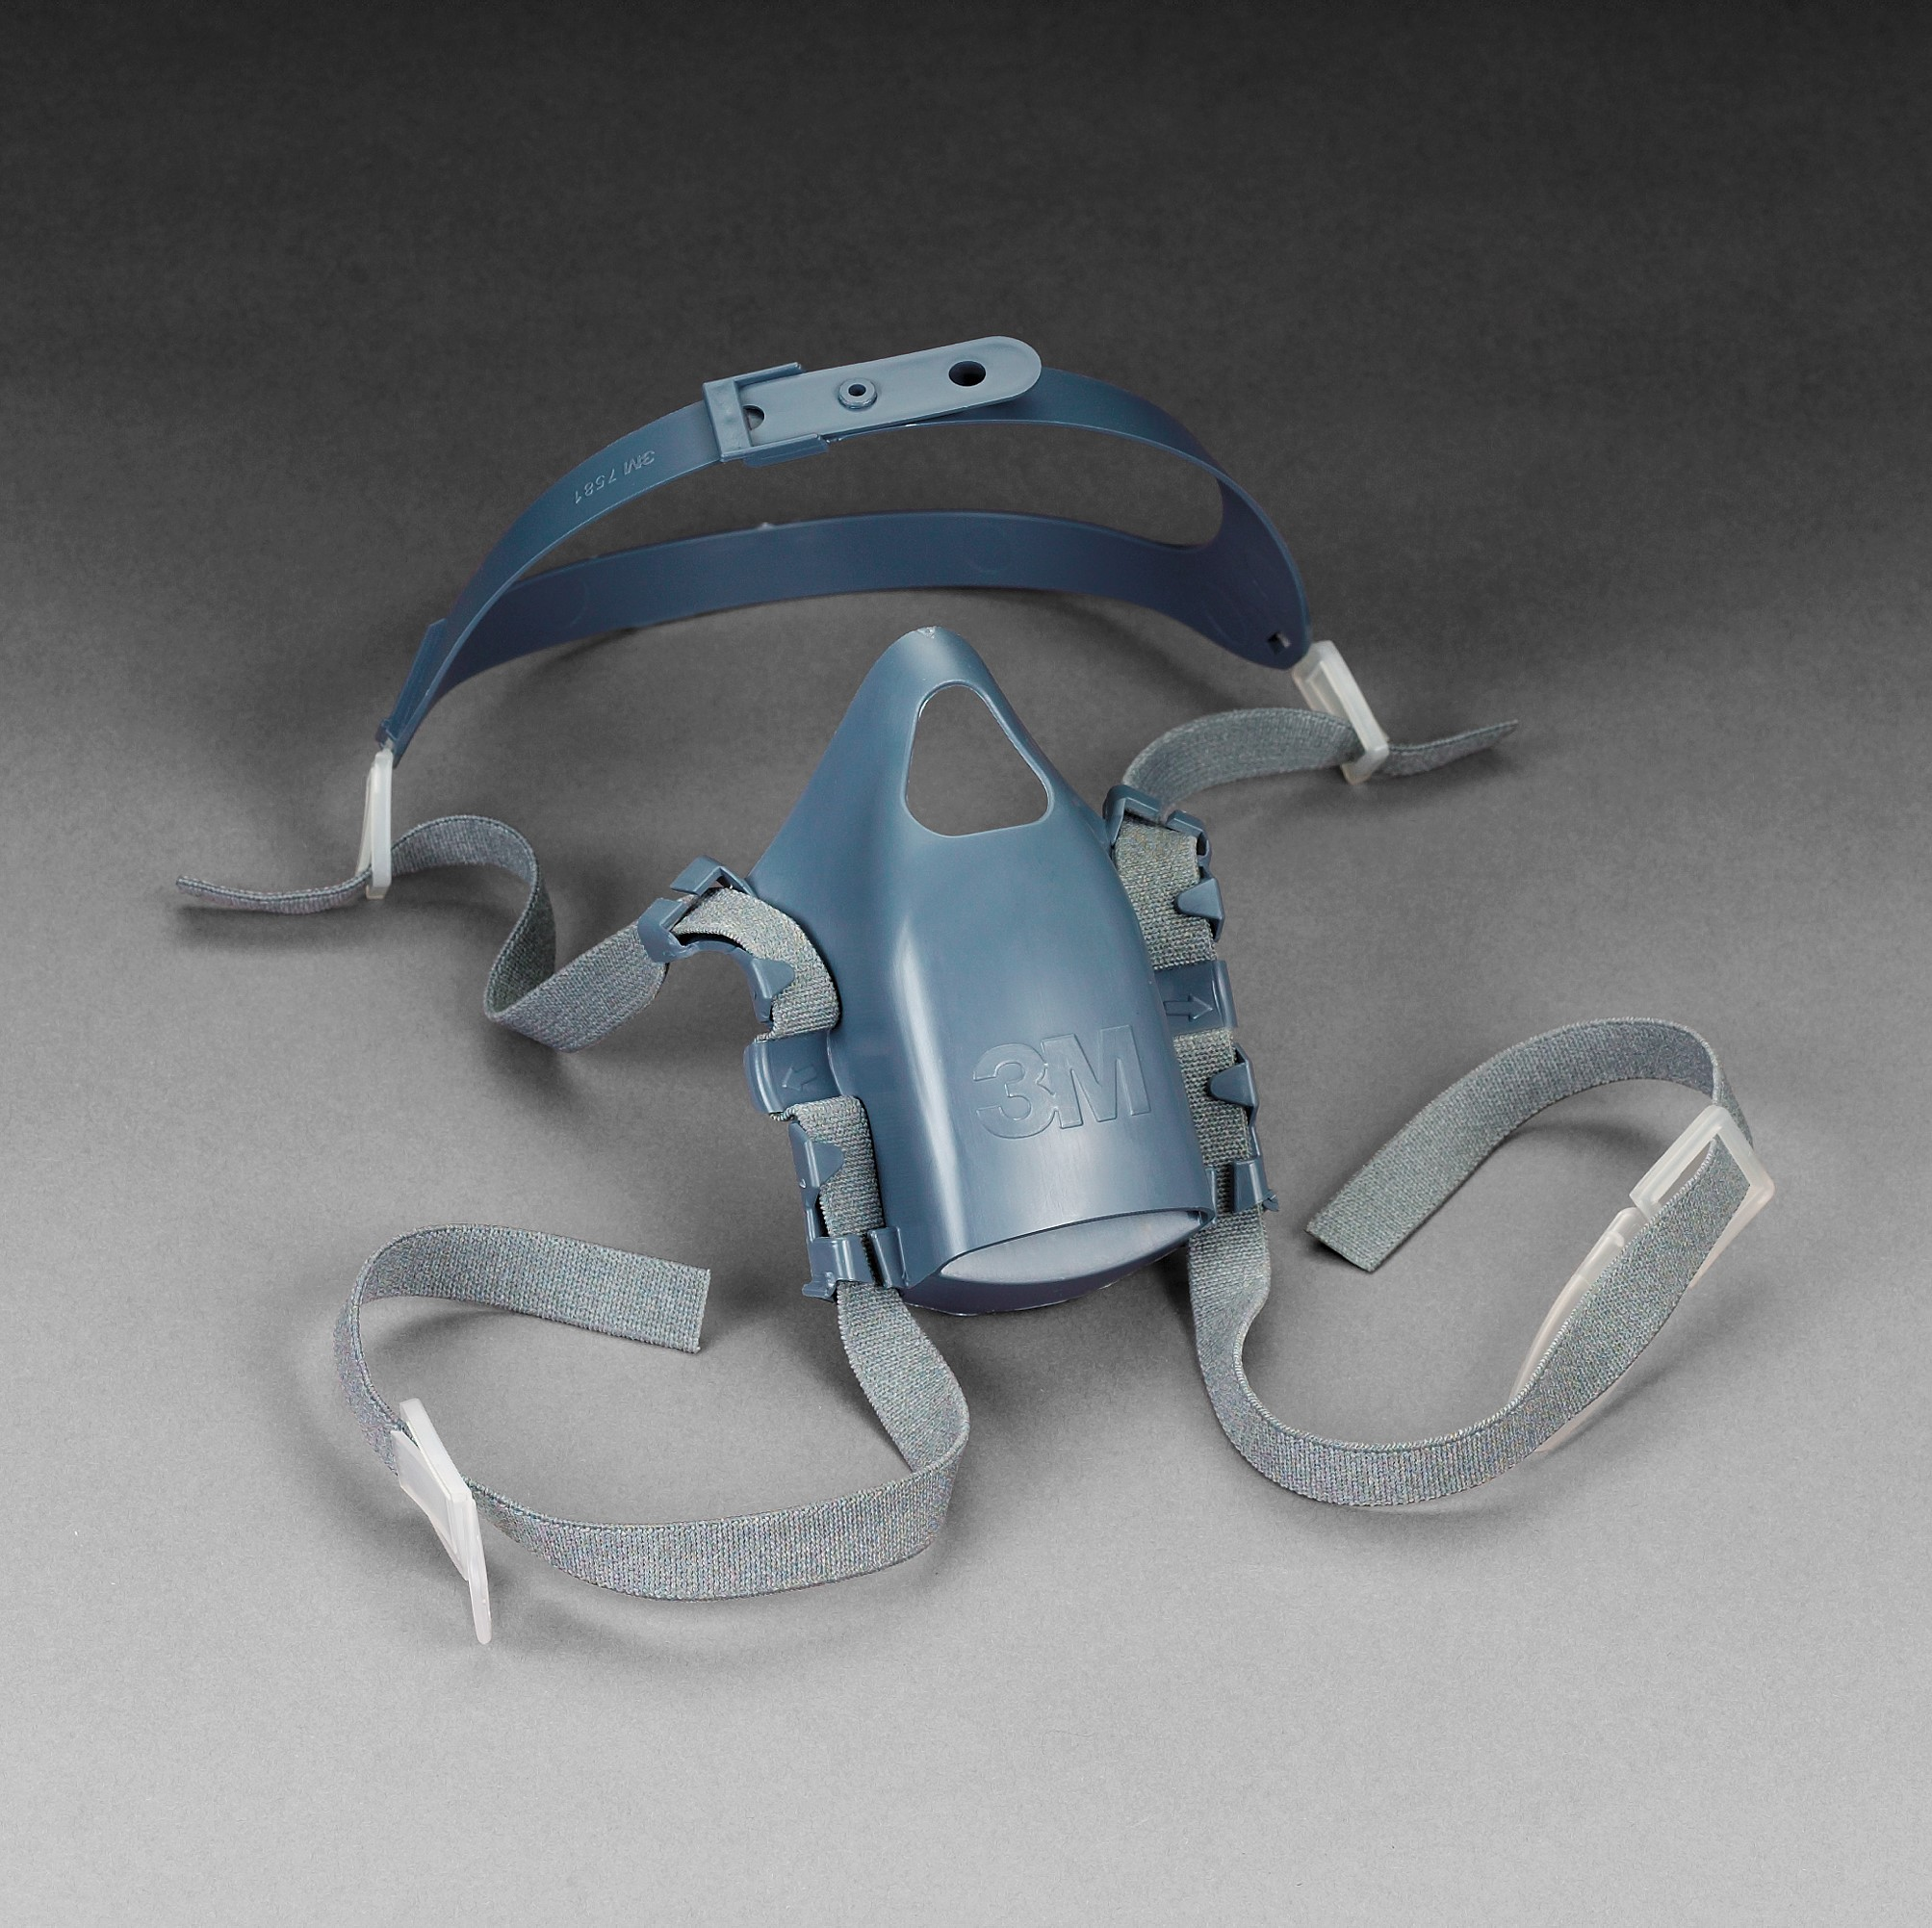 Reusable Respirator Parts & Accessories